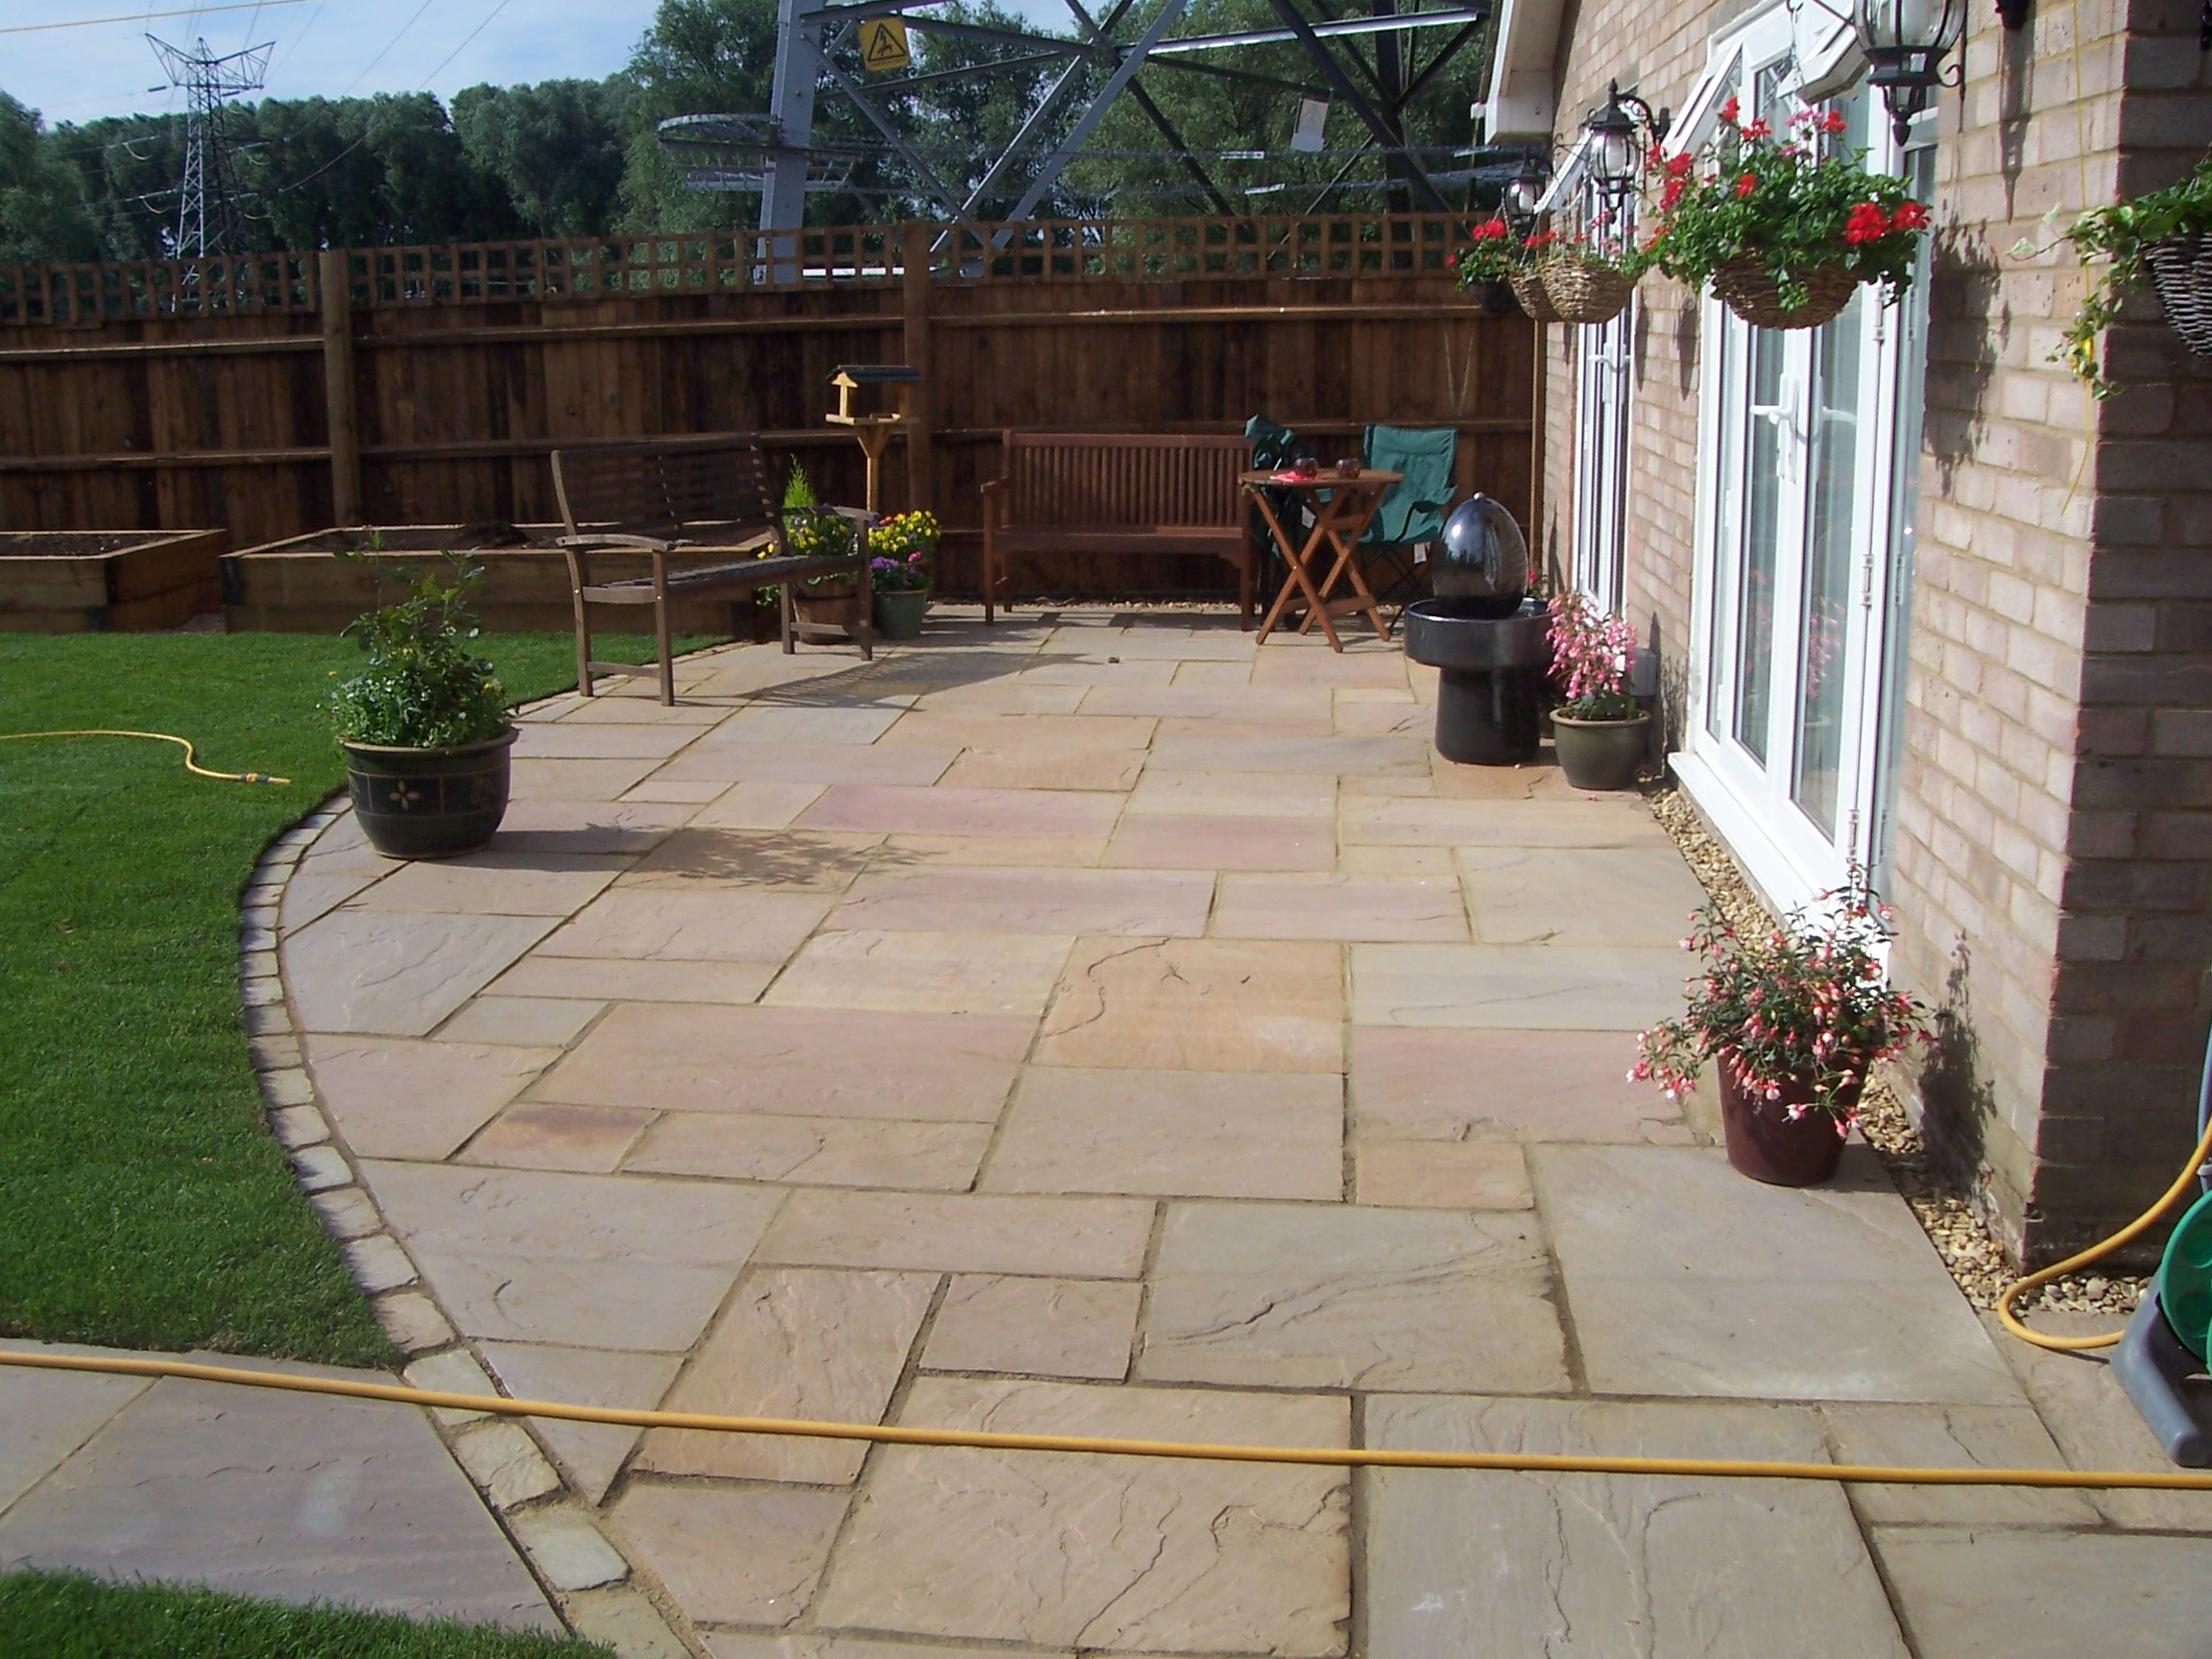 Boyde landscapes bedford block paving and driveways for Garden paving designs